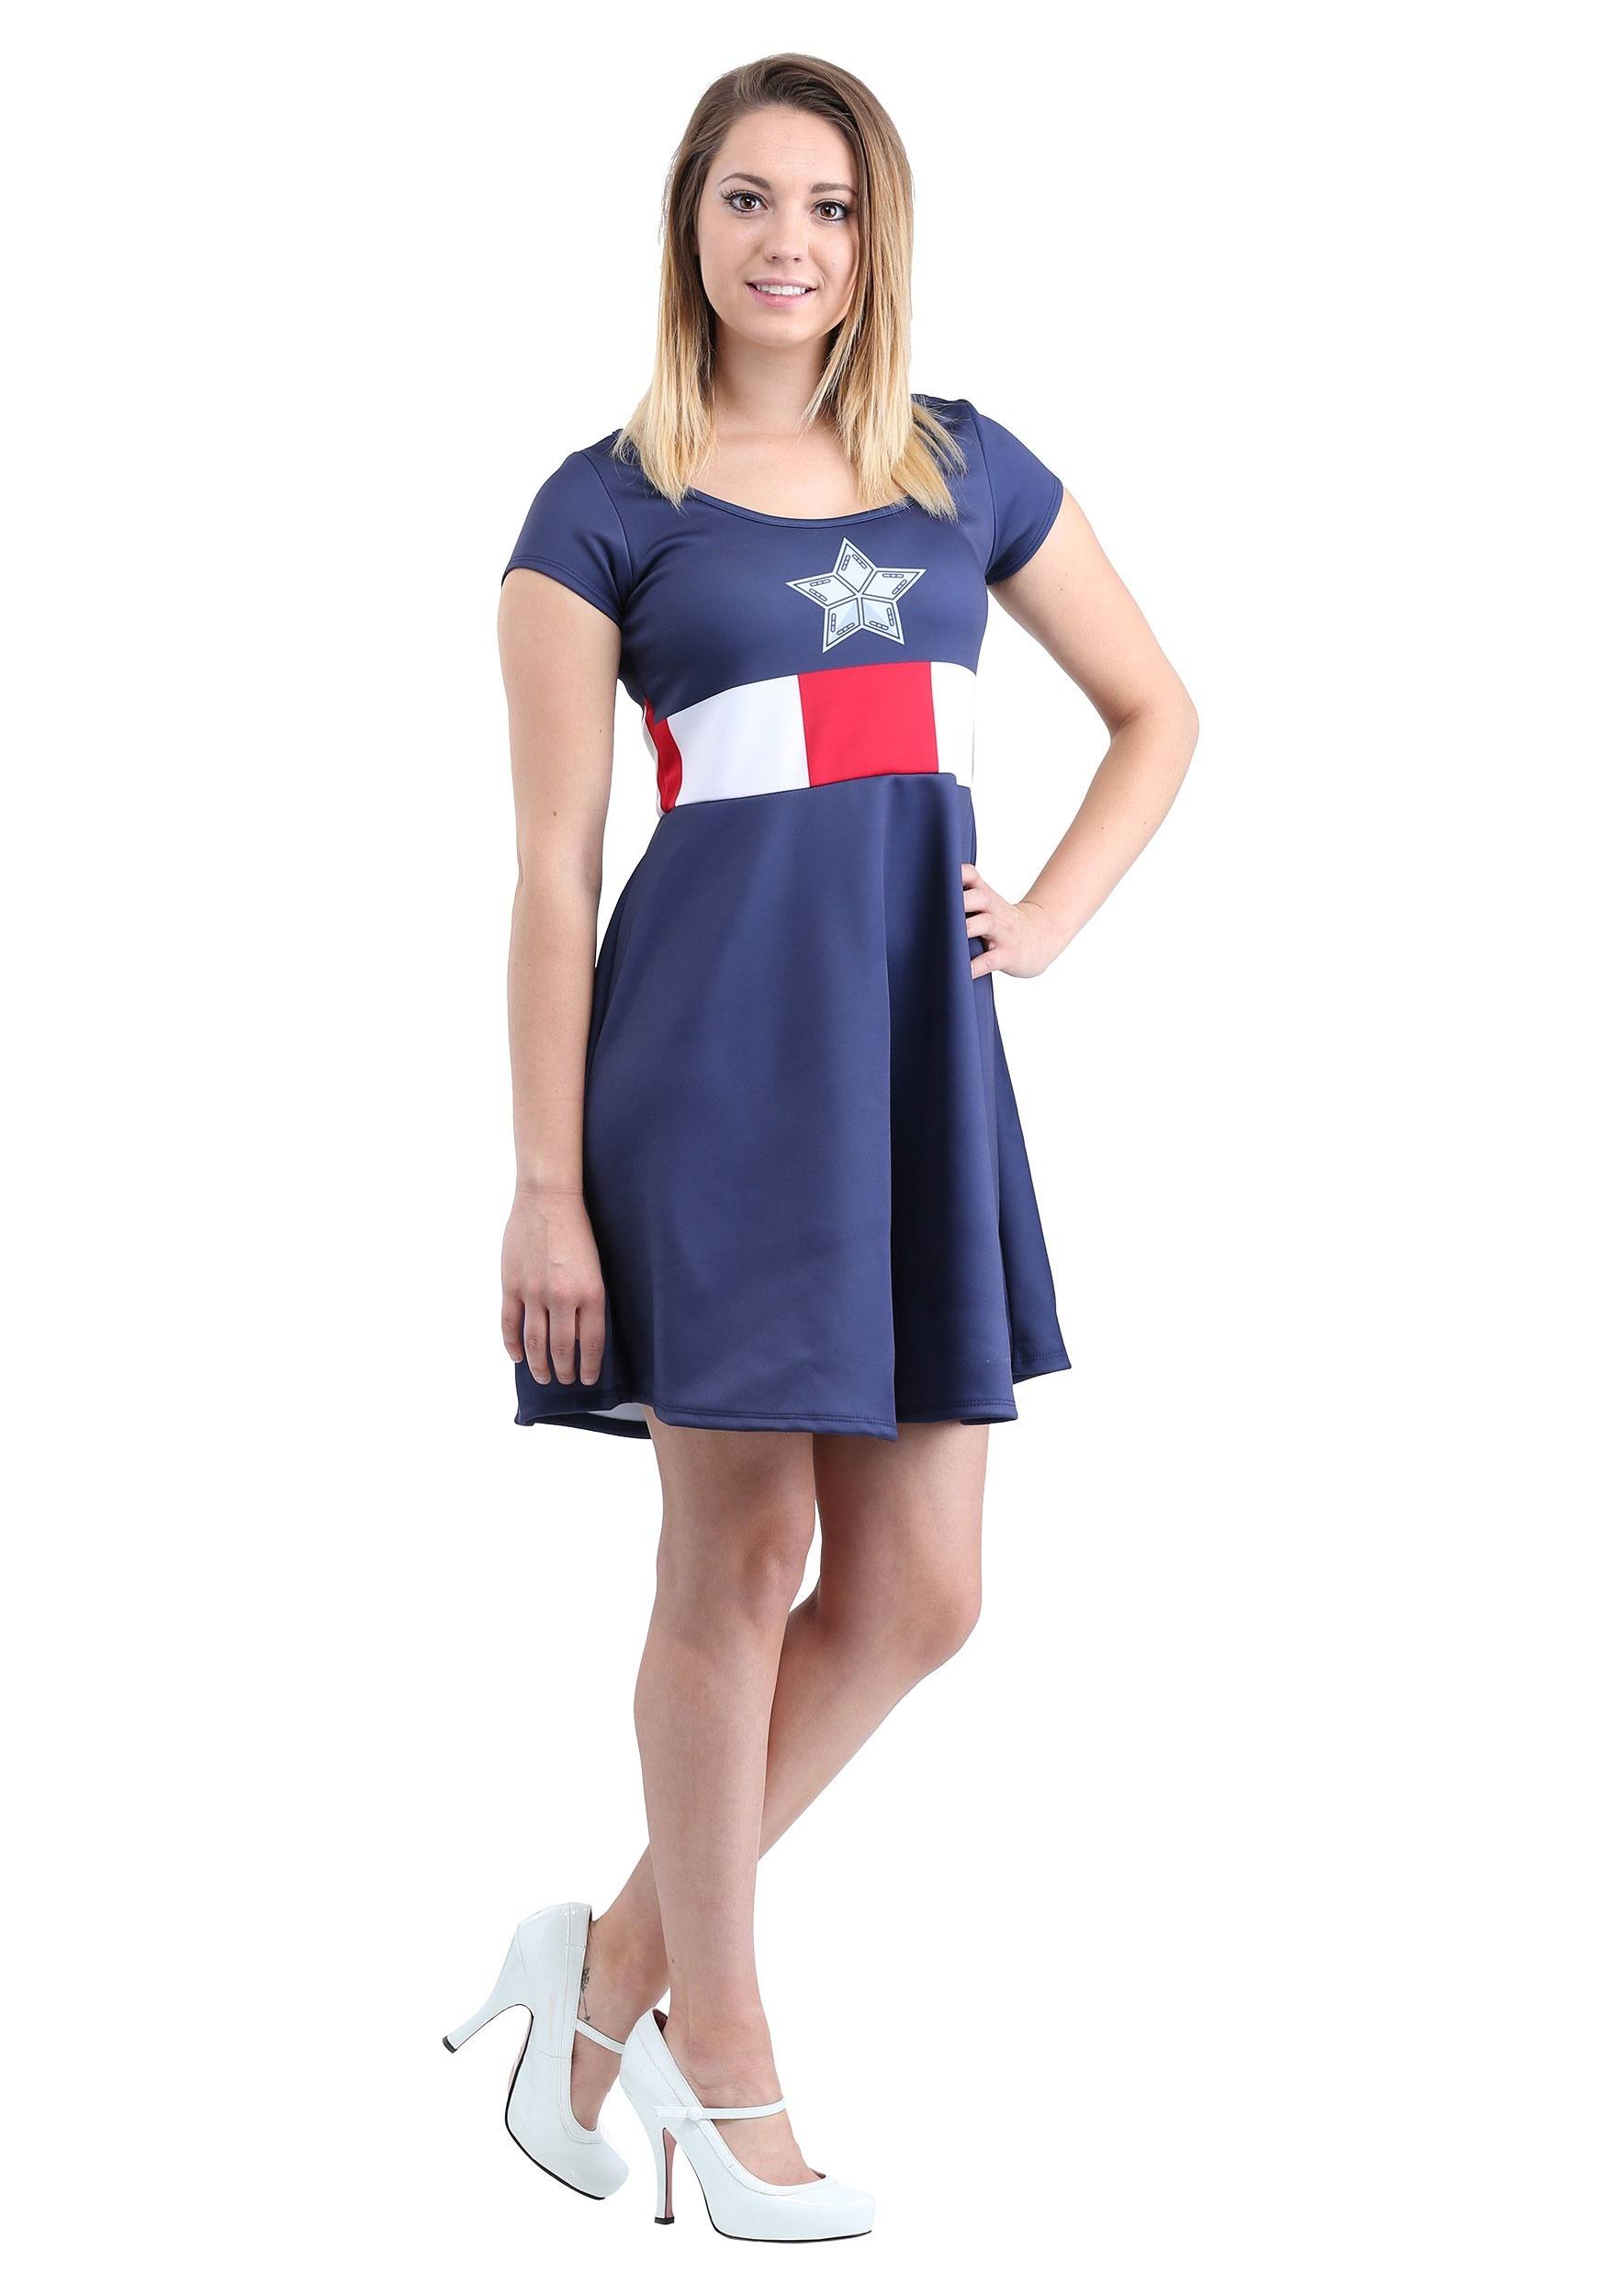 Image of Captain America Marvel Costume Dress for Women